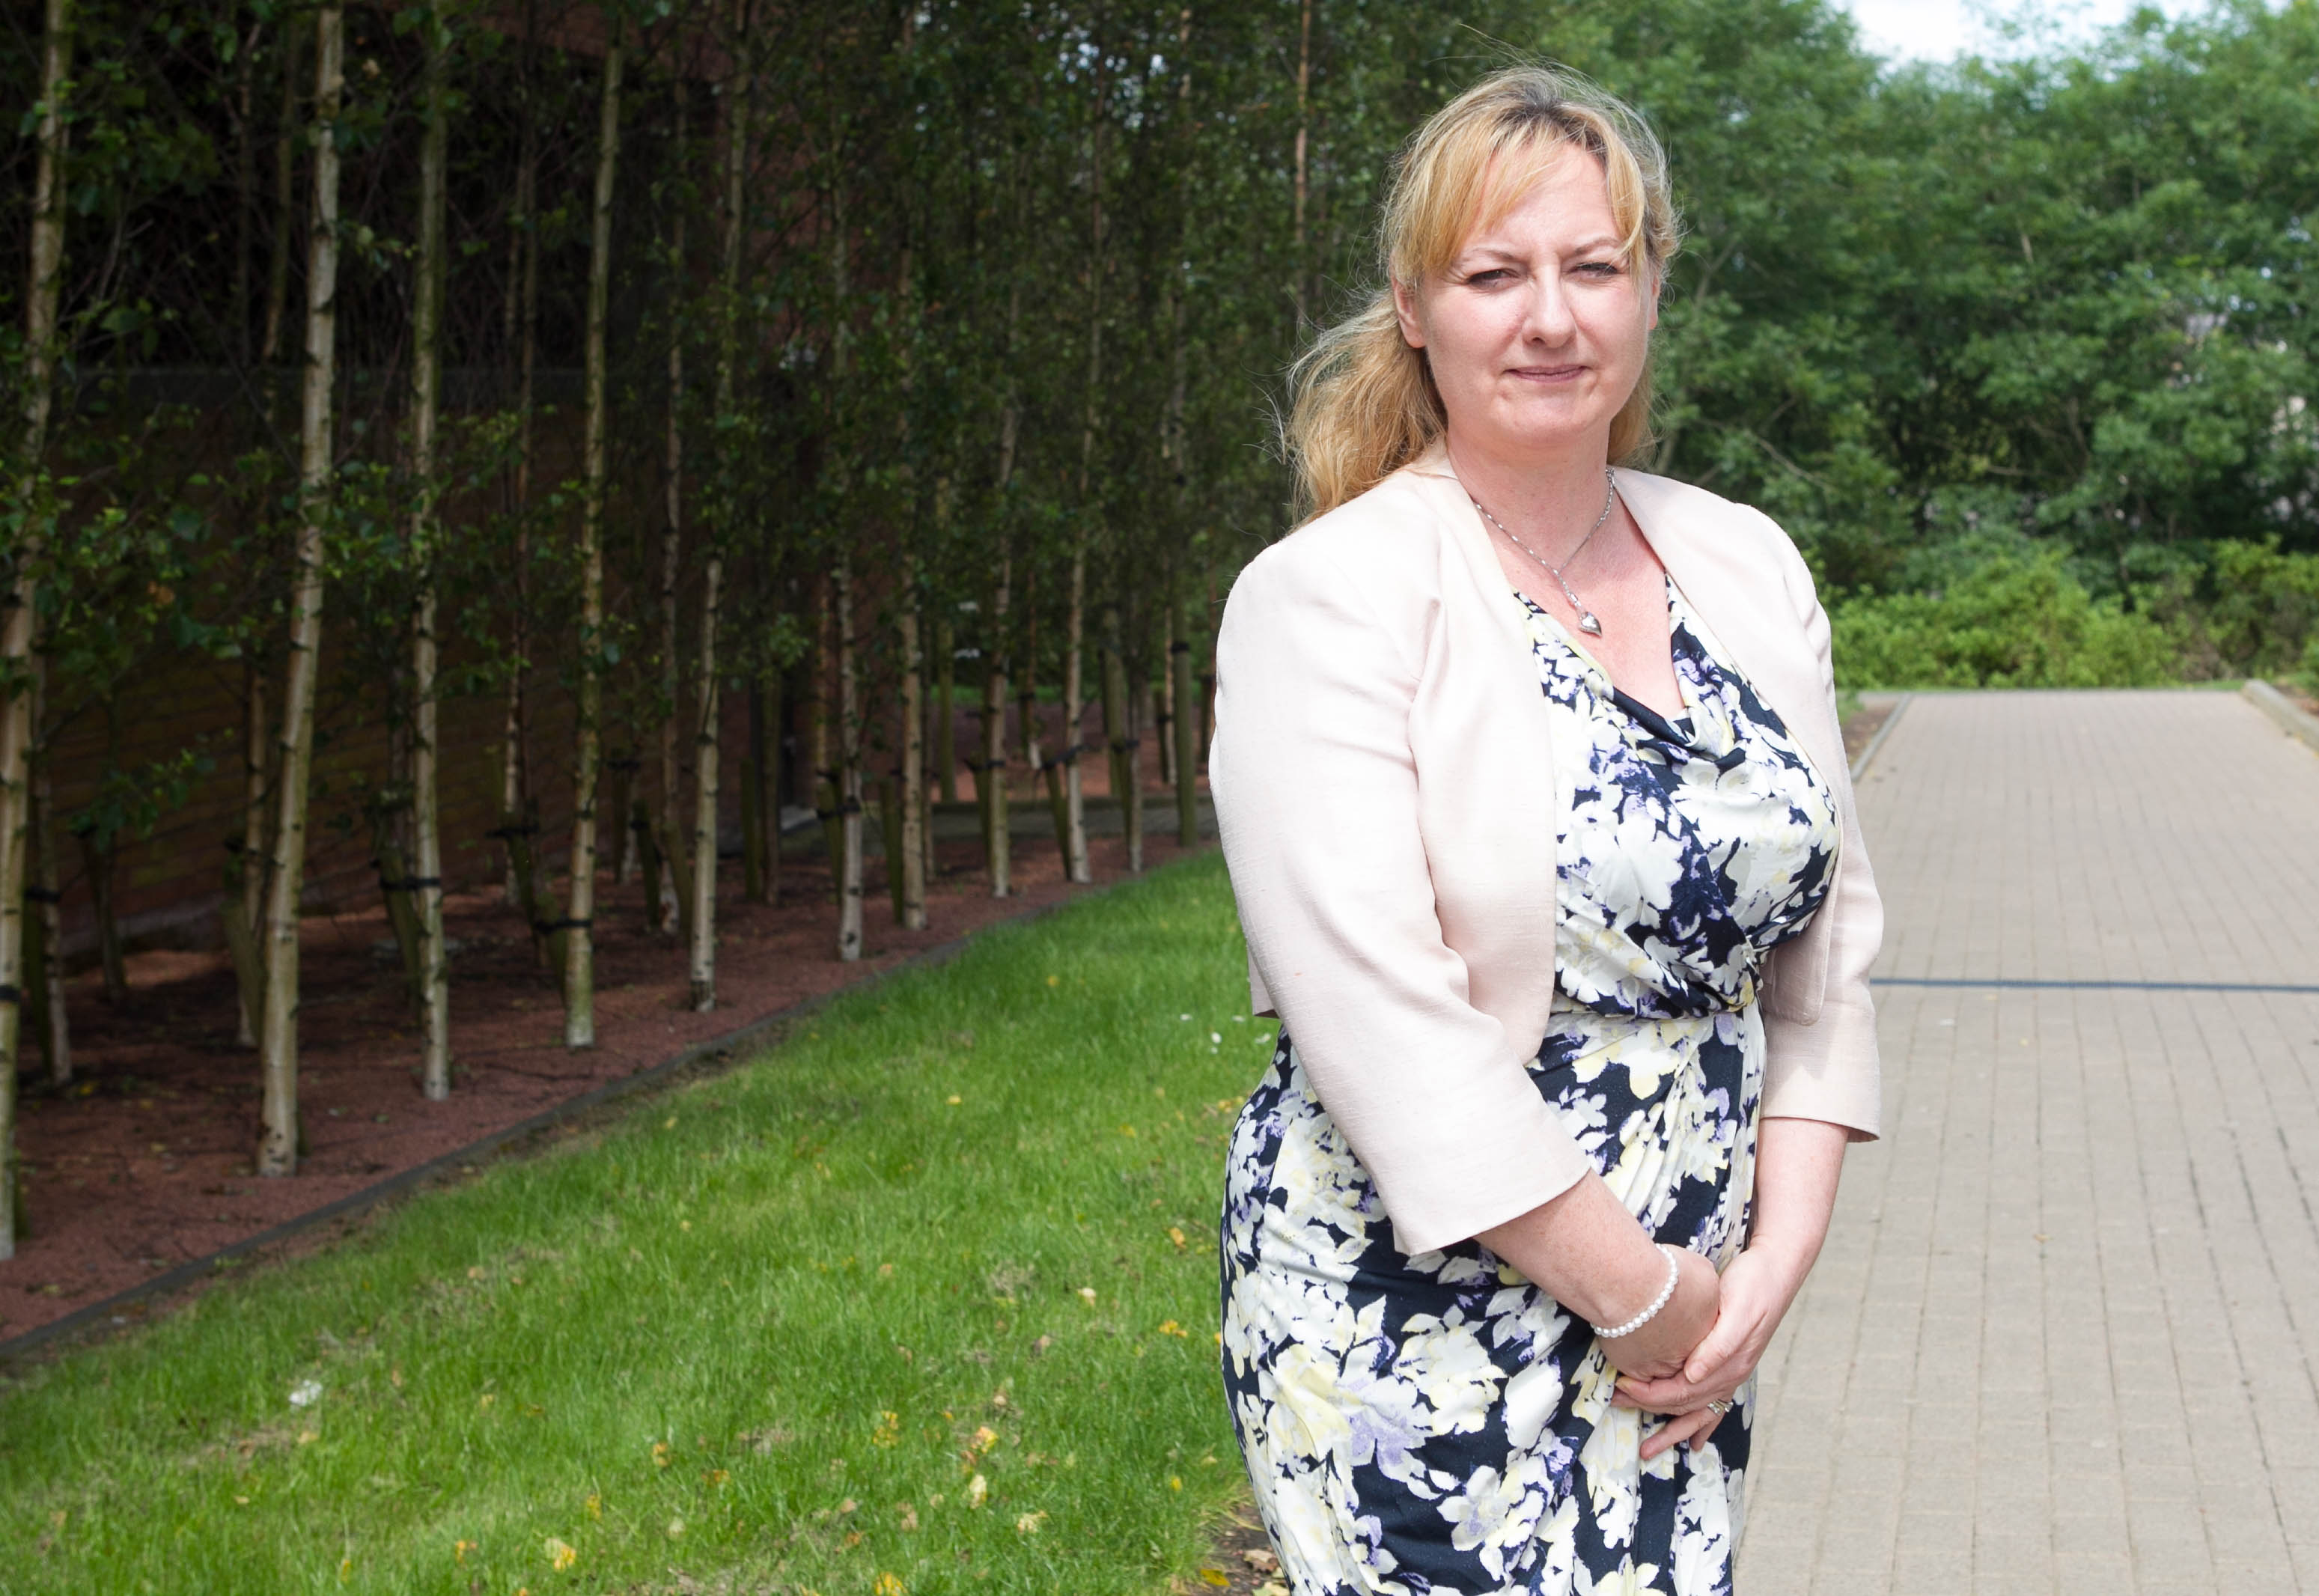 Dr Lisa Cameron MP for East Kilbride is being trolled on social media for her views on abortion.